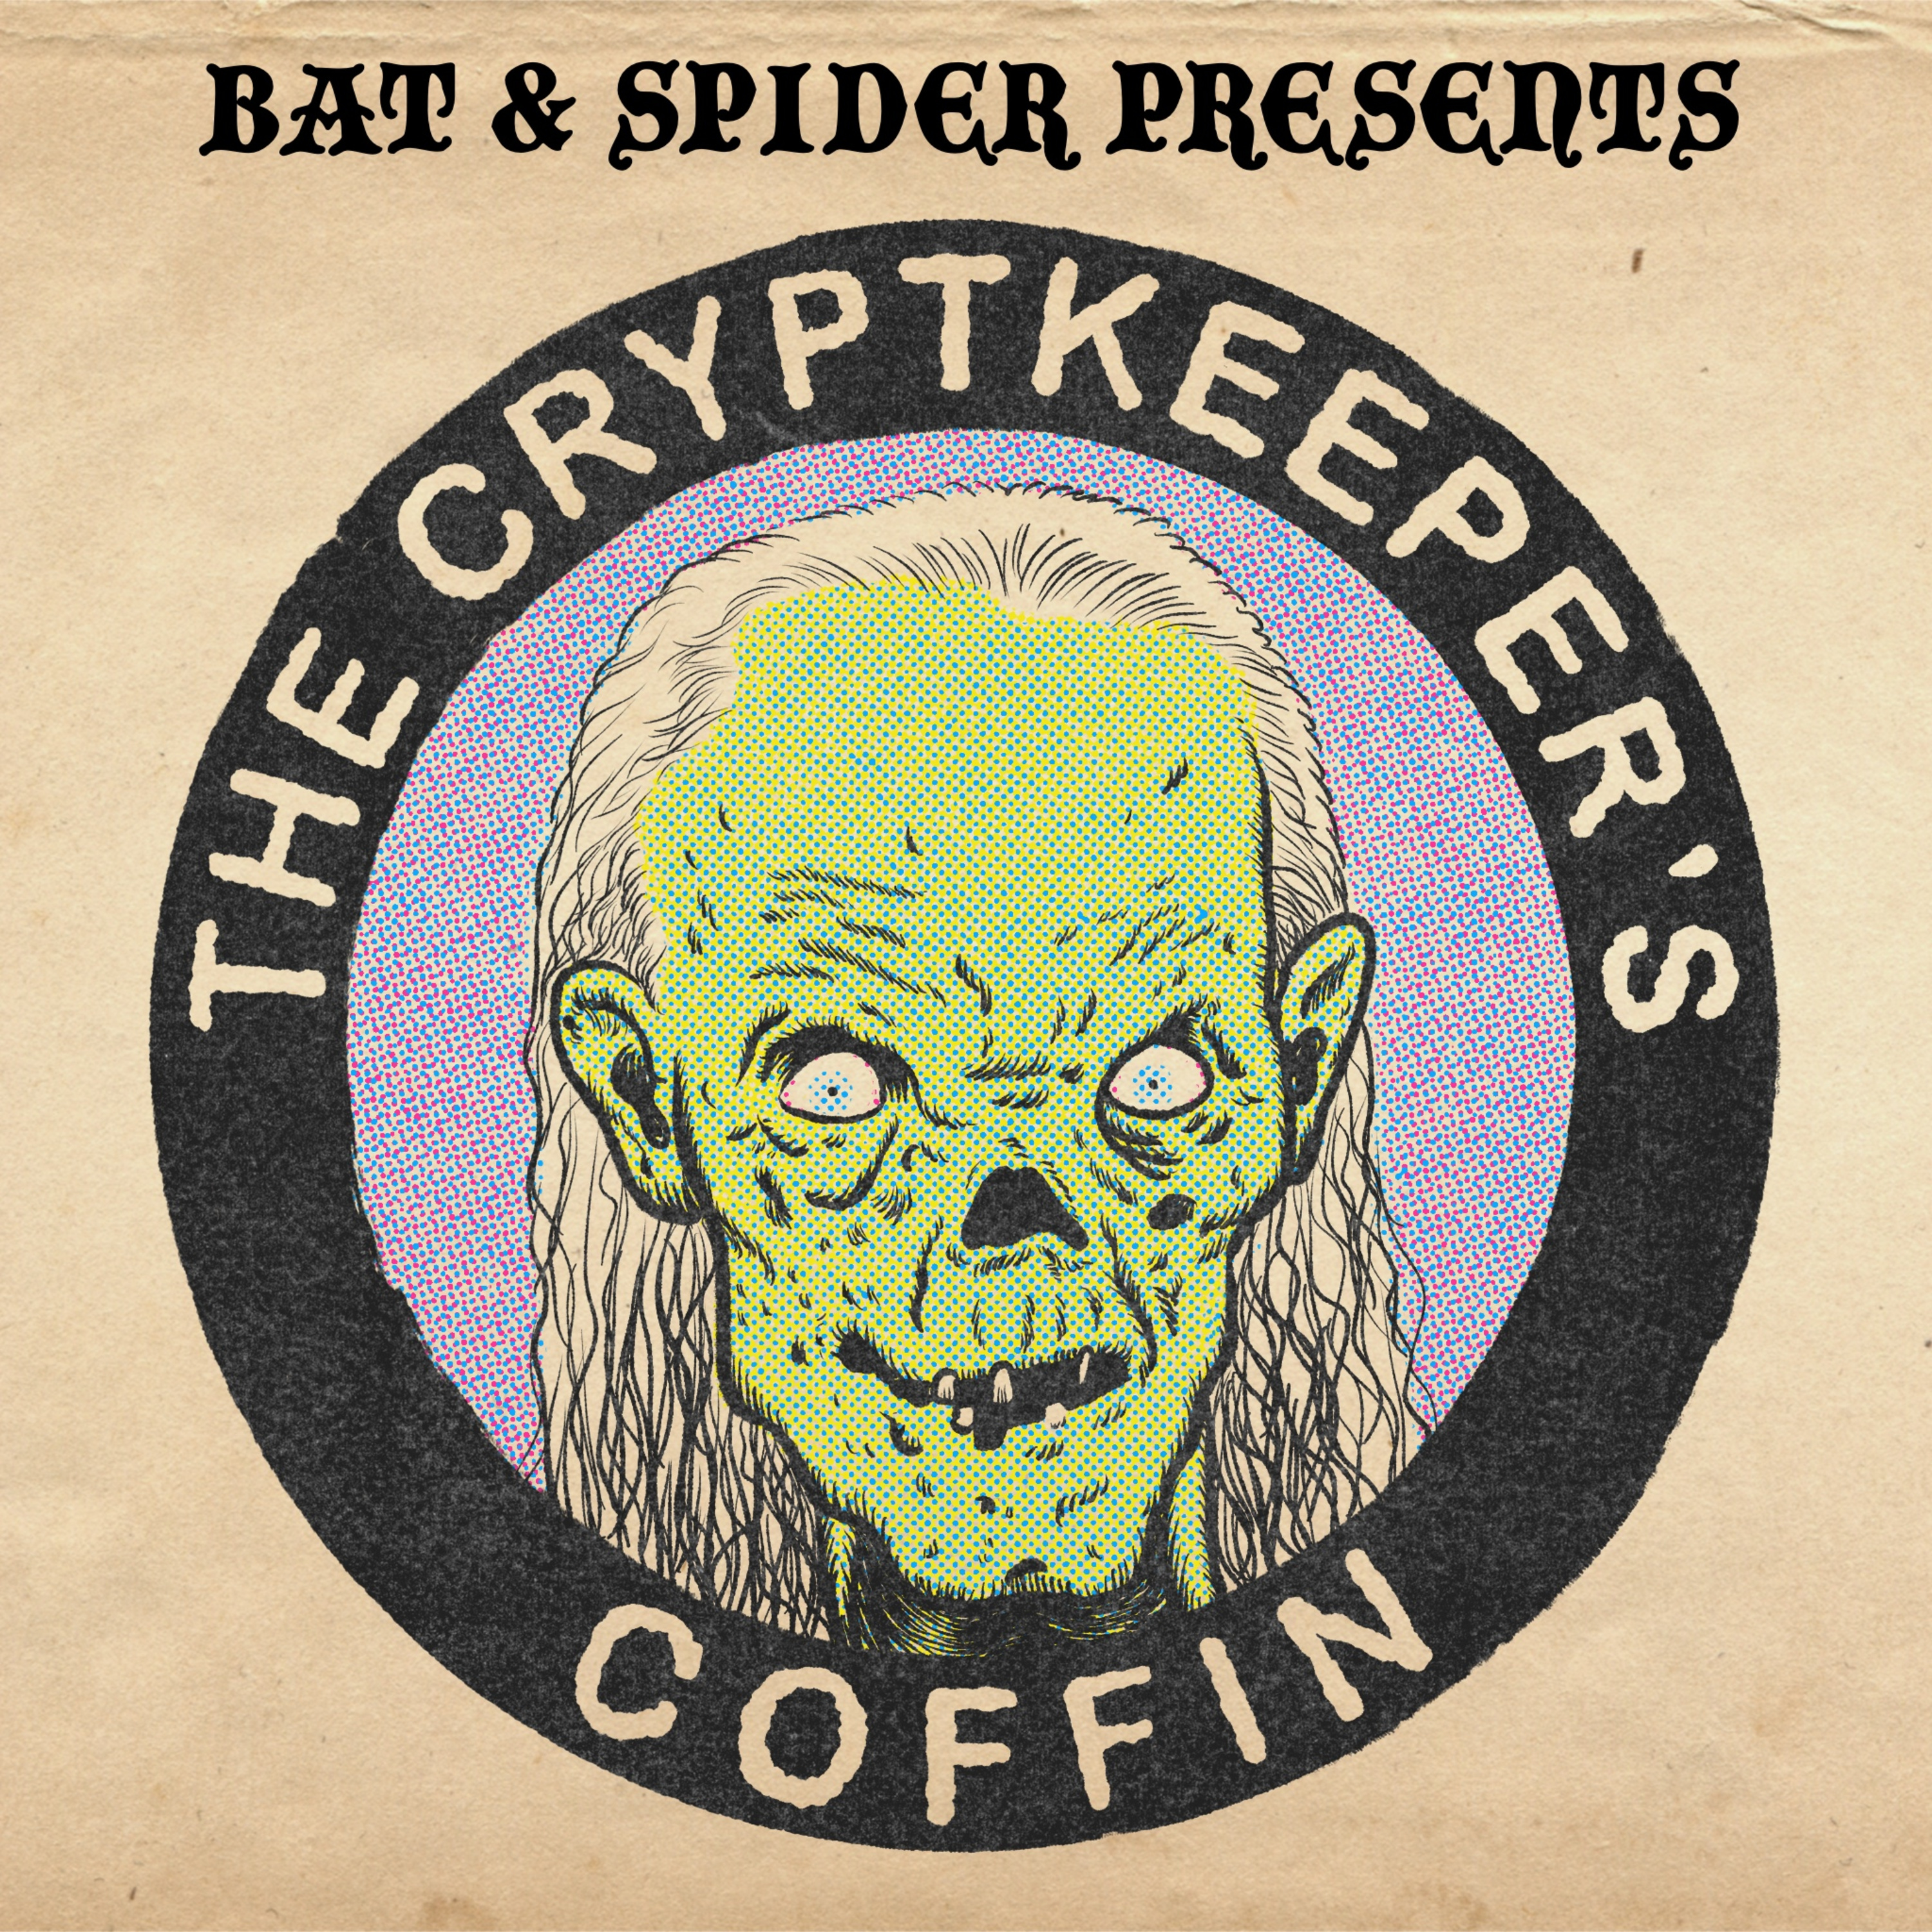 The Crypt Keeper's Coffin 005 - Lover, Come Hack to me